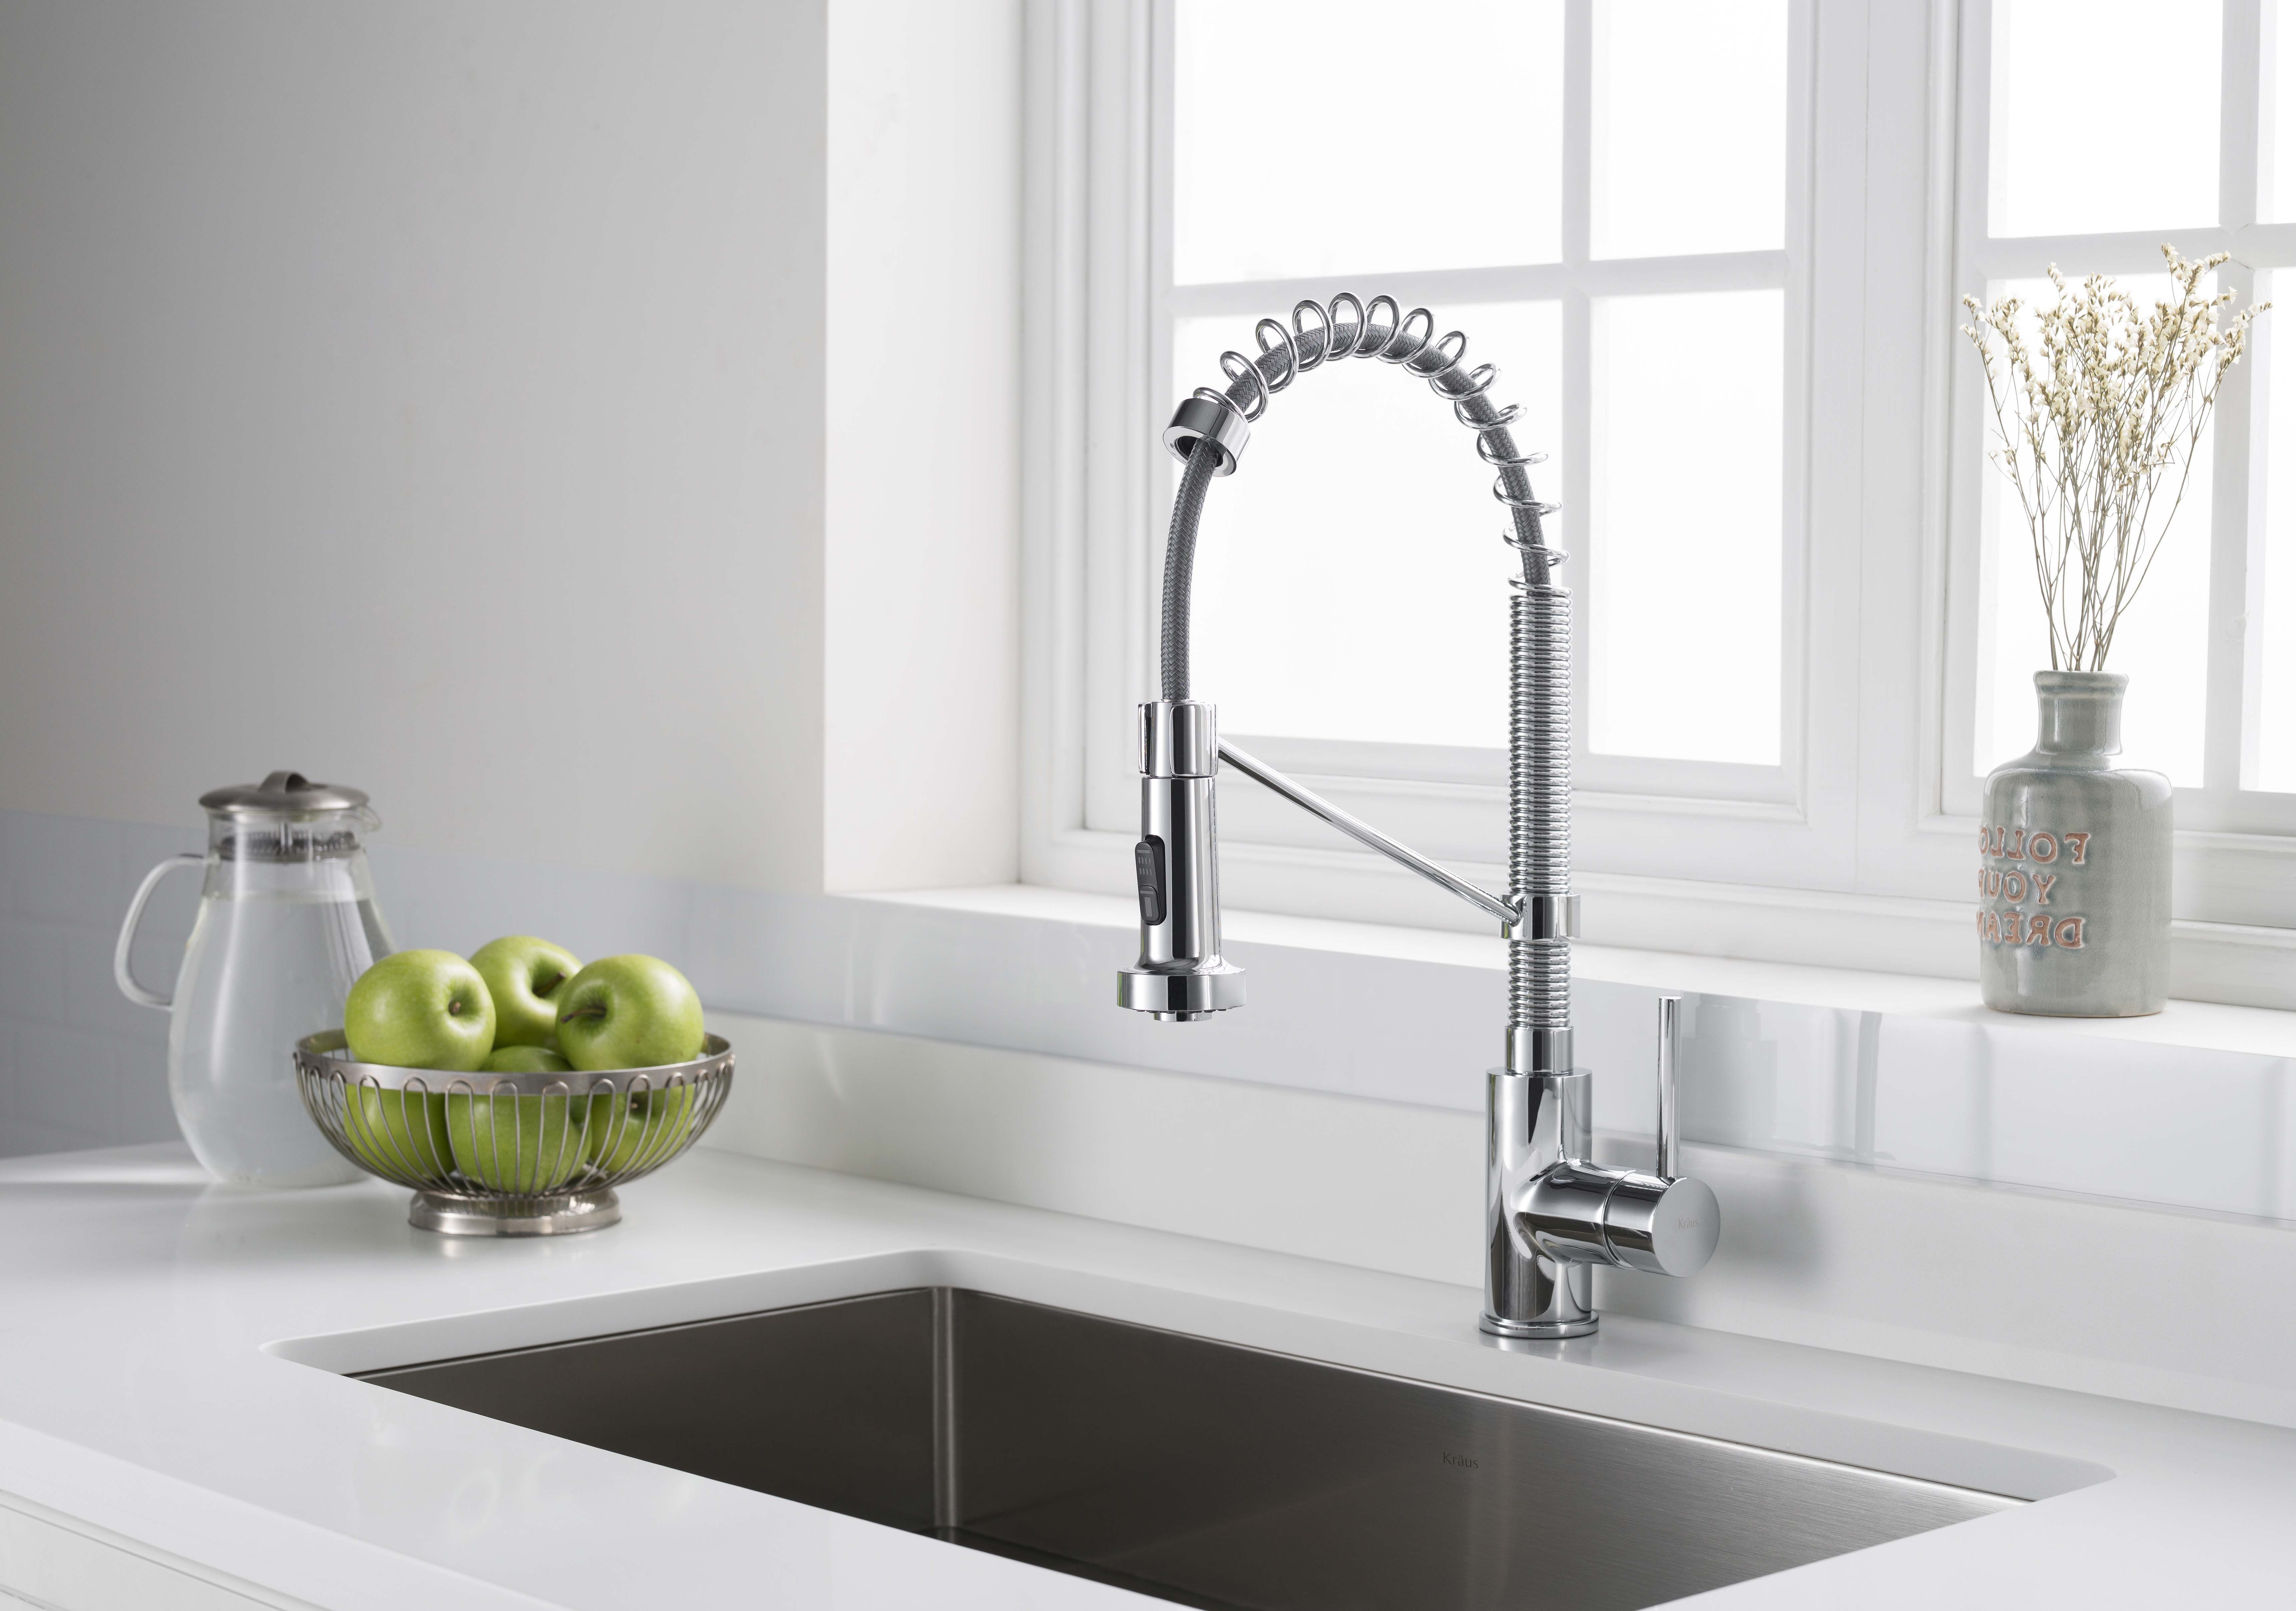 Eco-Friendly Faucet: Water-saving aerator reduces water waste ...